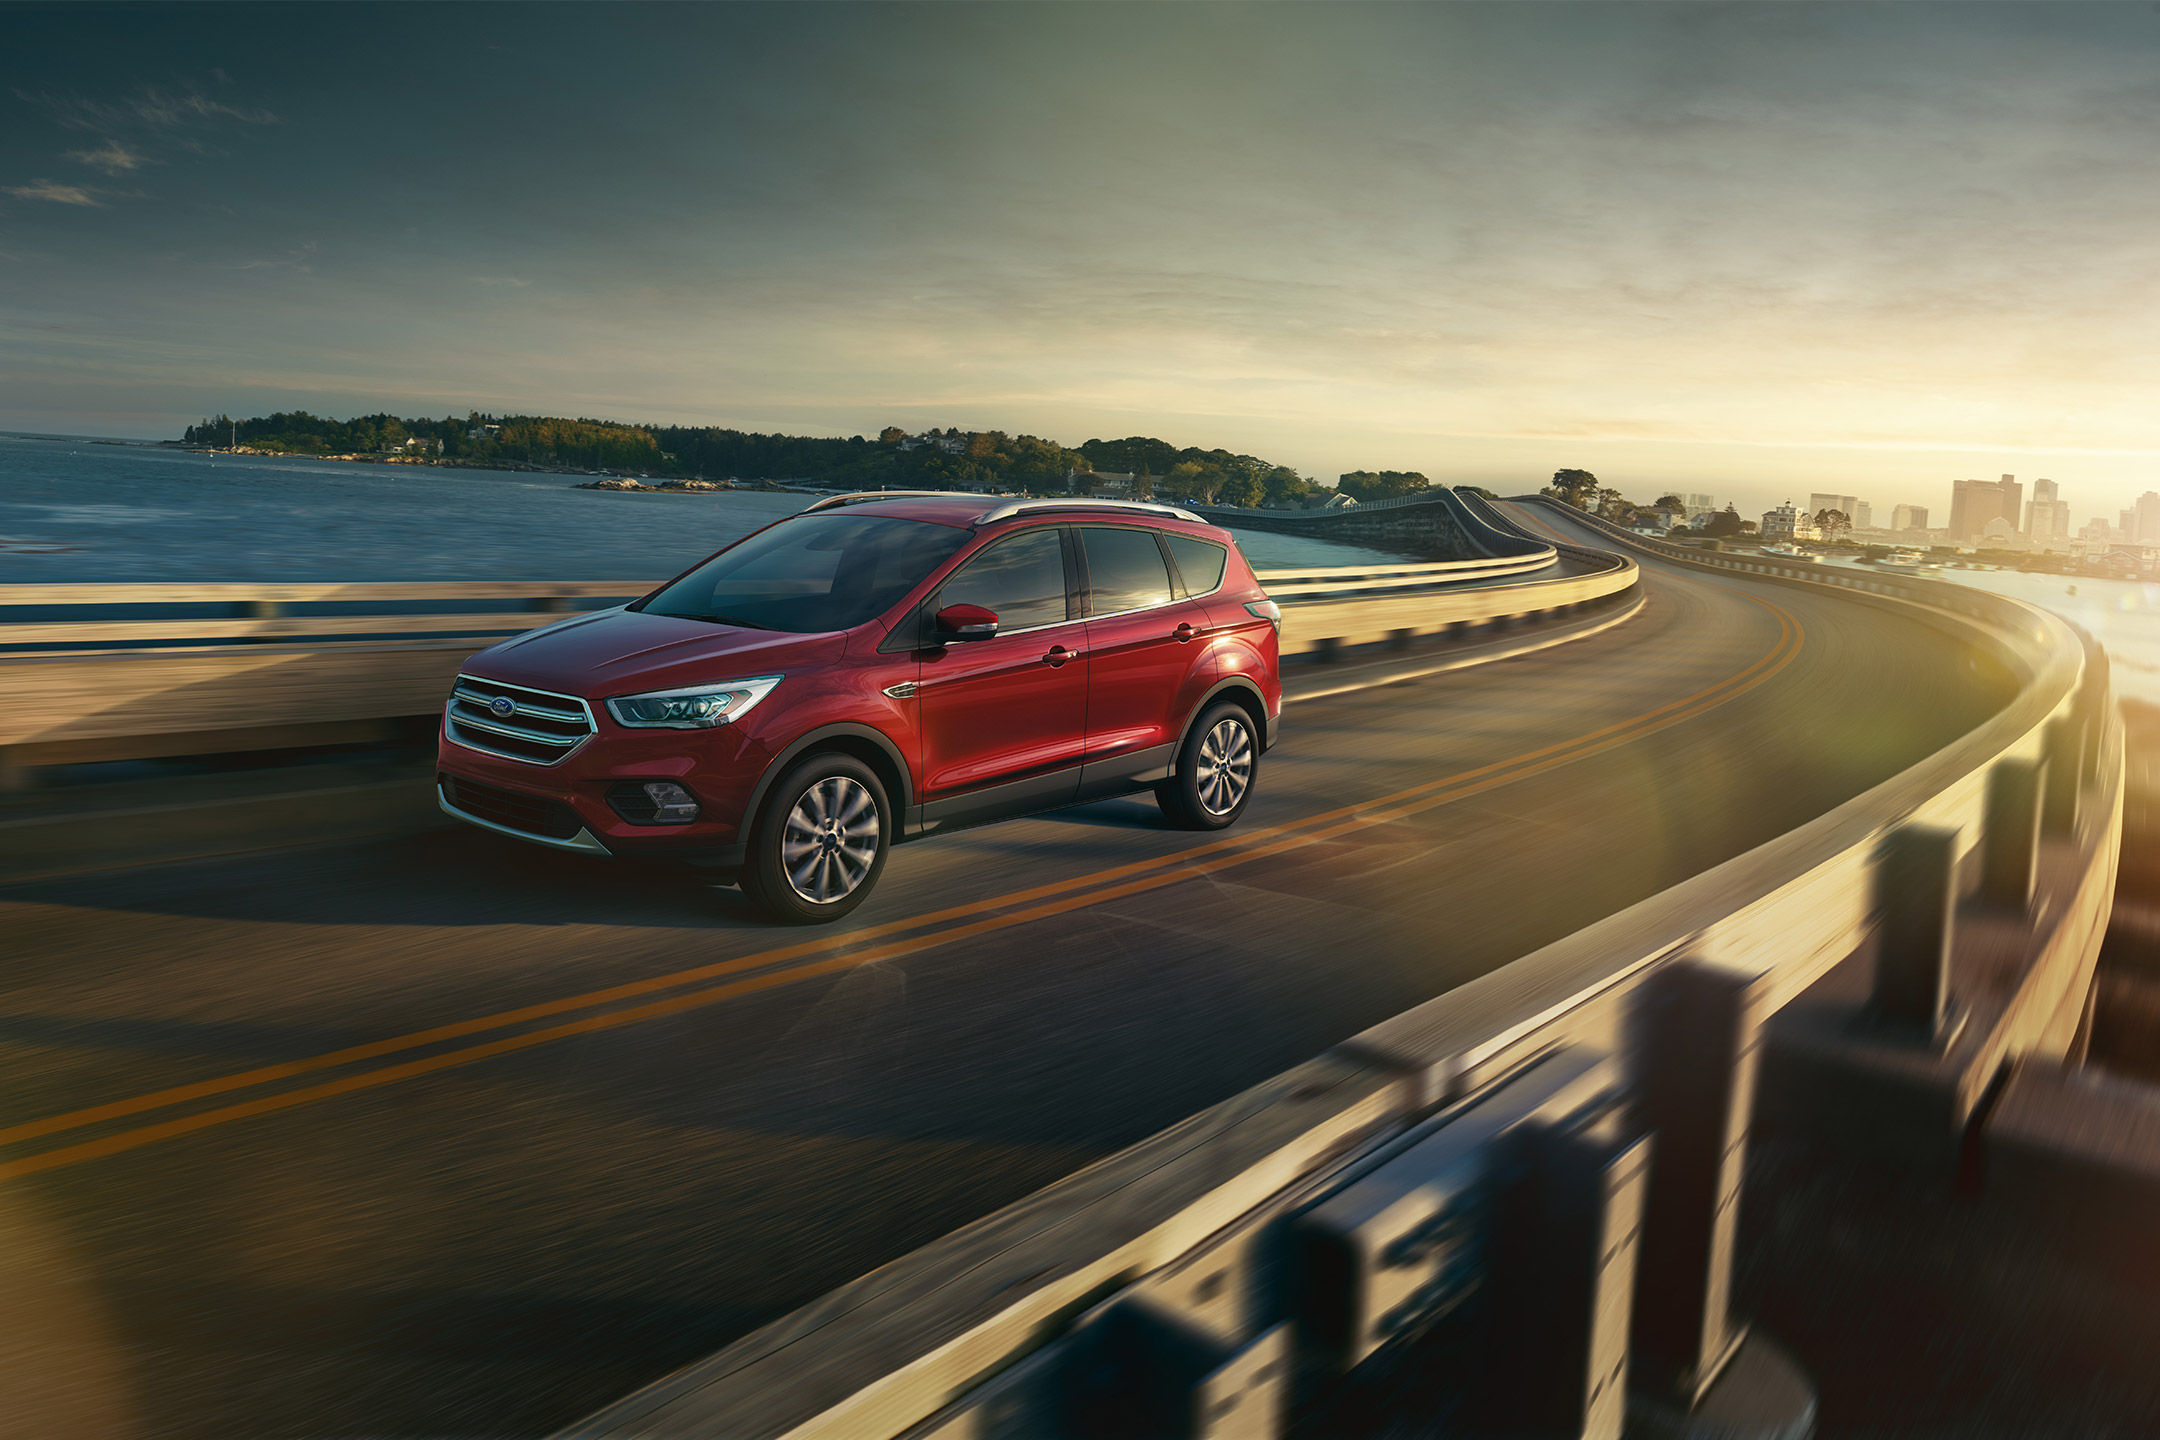 The 2017 Ford Escape & Gilboy Ford | New Ford dealership in Whitehall PA 18052 markmcfarlin.com